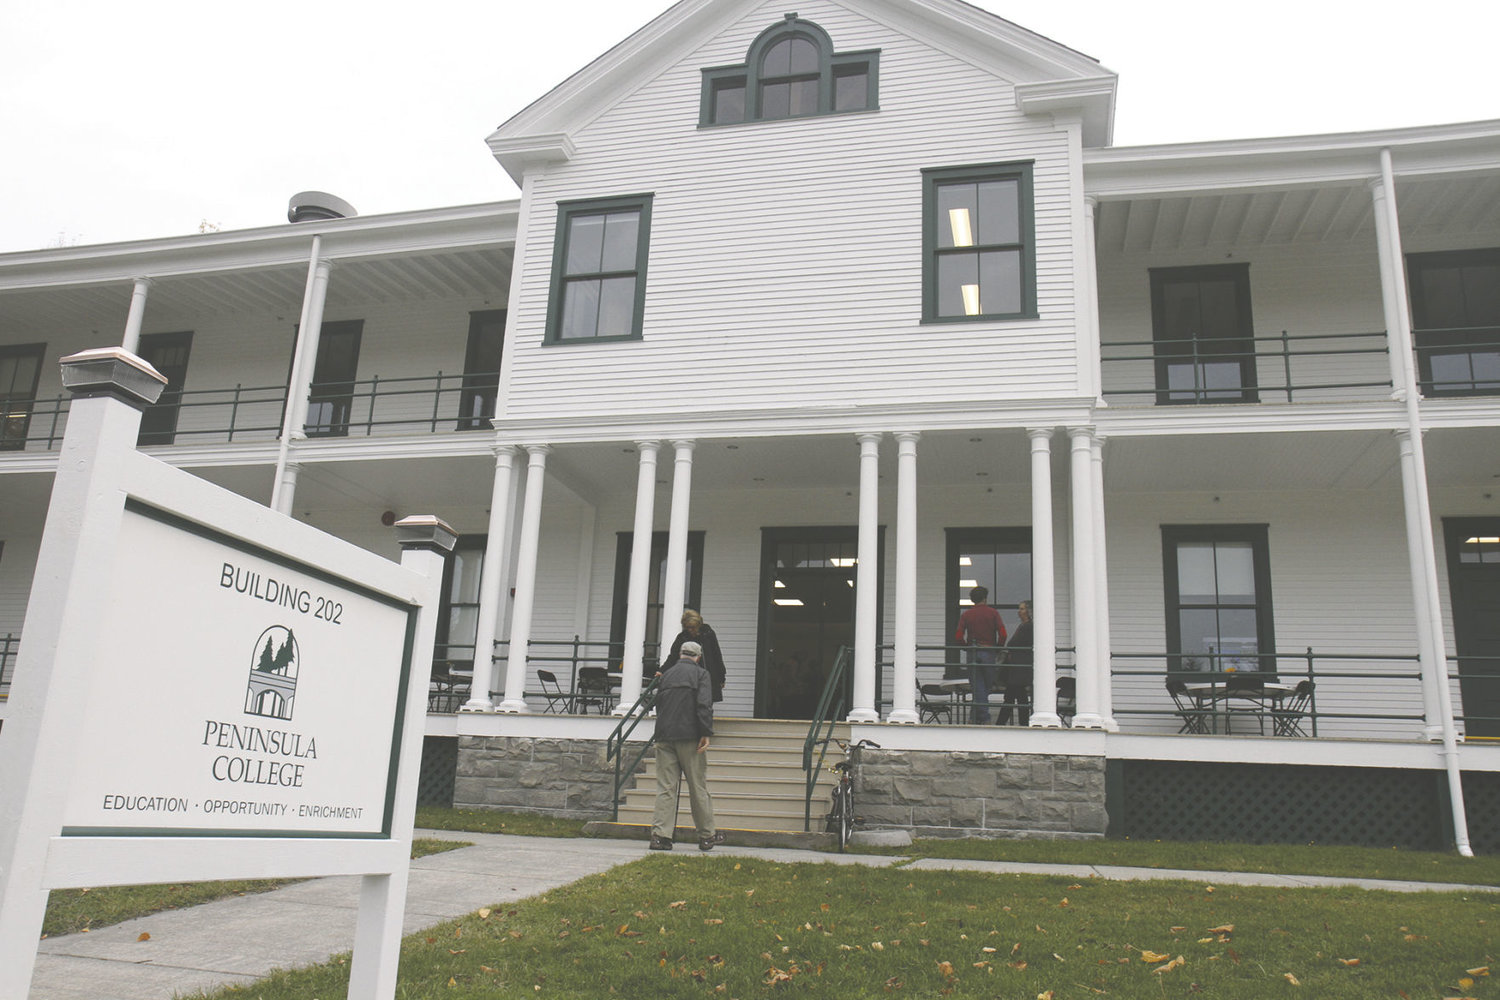 Built in 1904 as a barracks for U.S. Army Coast Artillery soldiers, Fort Worden's Building 202 is now a modernized center for higher education. Peninsula College classes began in the remodeled 14,000 square foot building in September. Photo by Patrick Sullivan